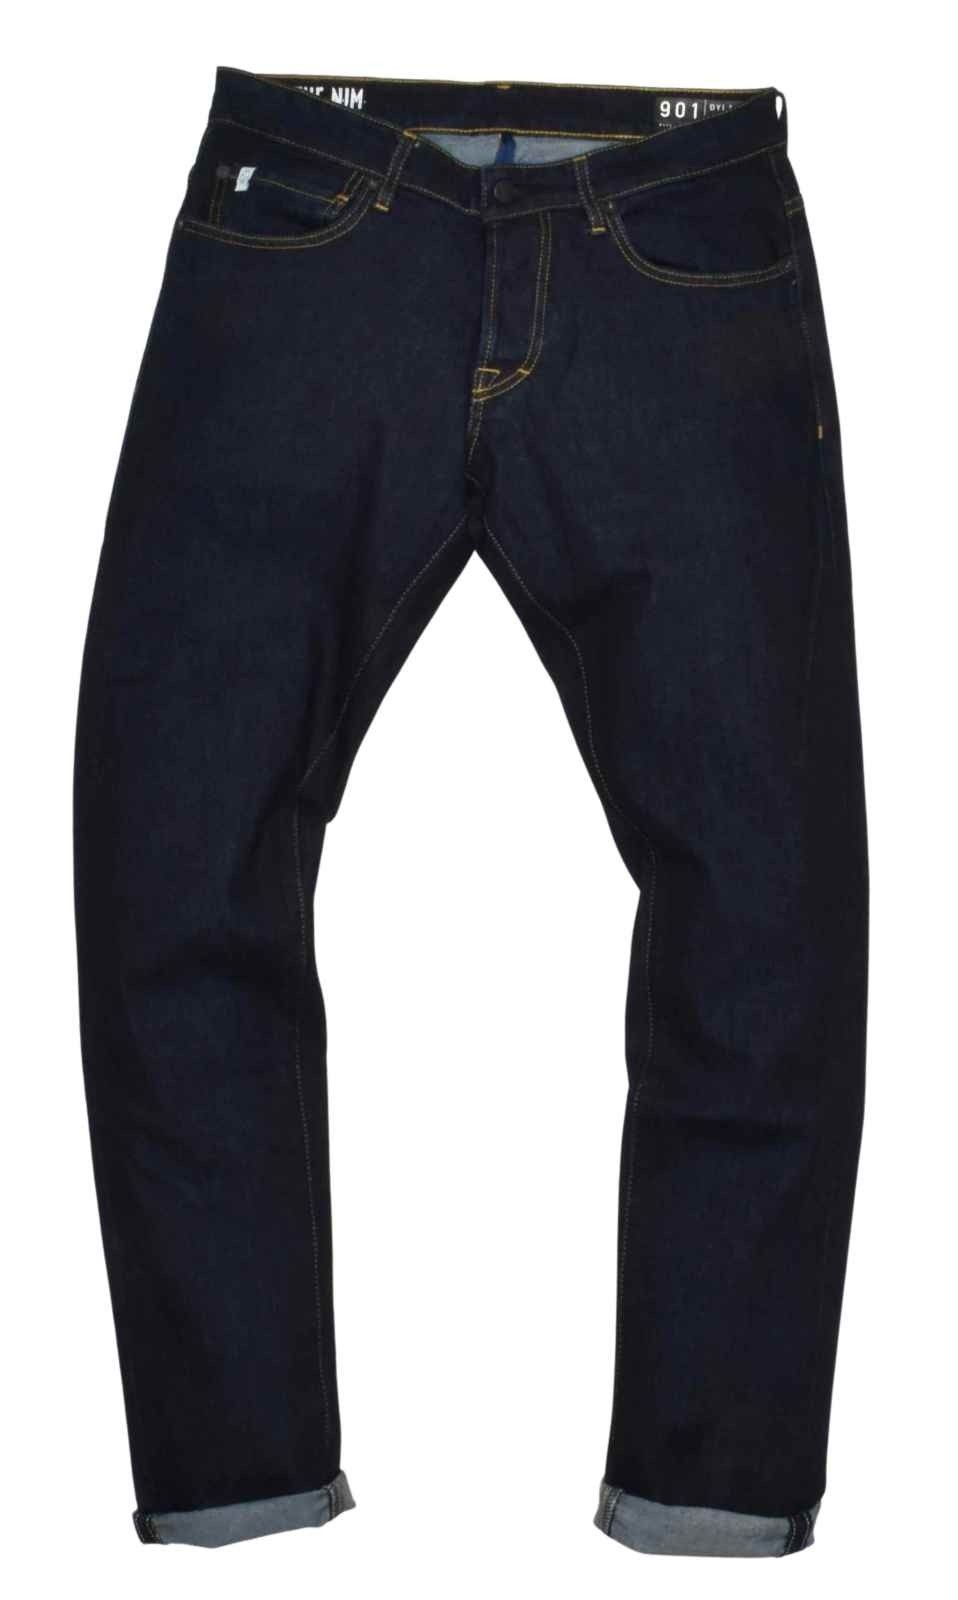 THE.NIM - Herren Jeans - Dylan Man Jeans Slim Fit - Rinse